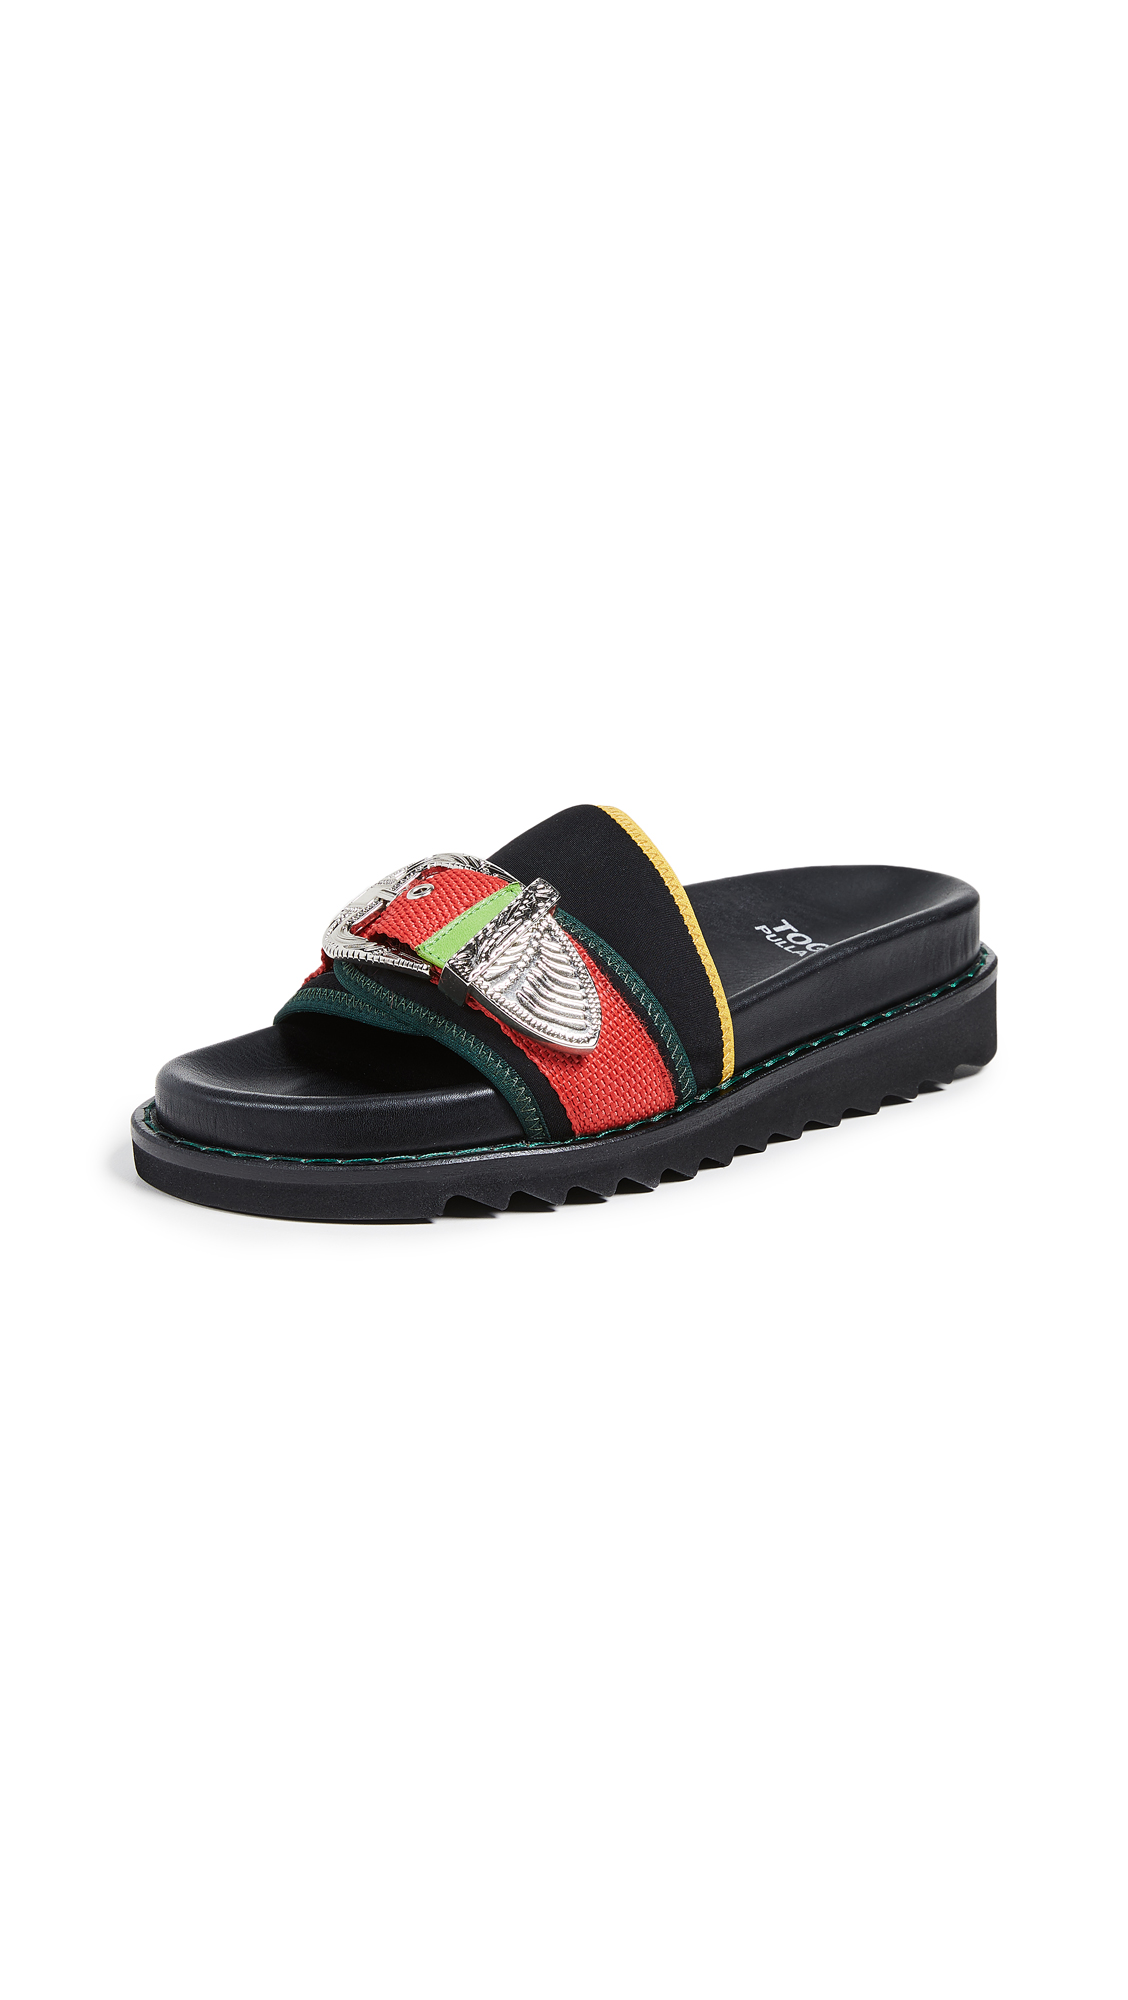 Toga Pulla Buckle Slides - Black Mix